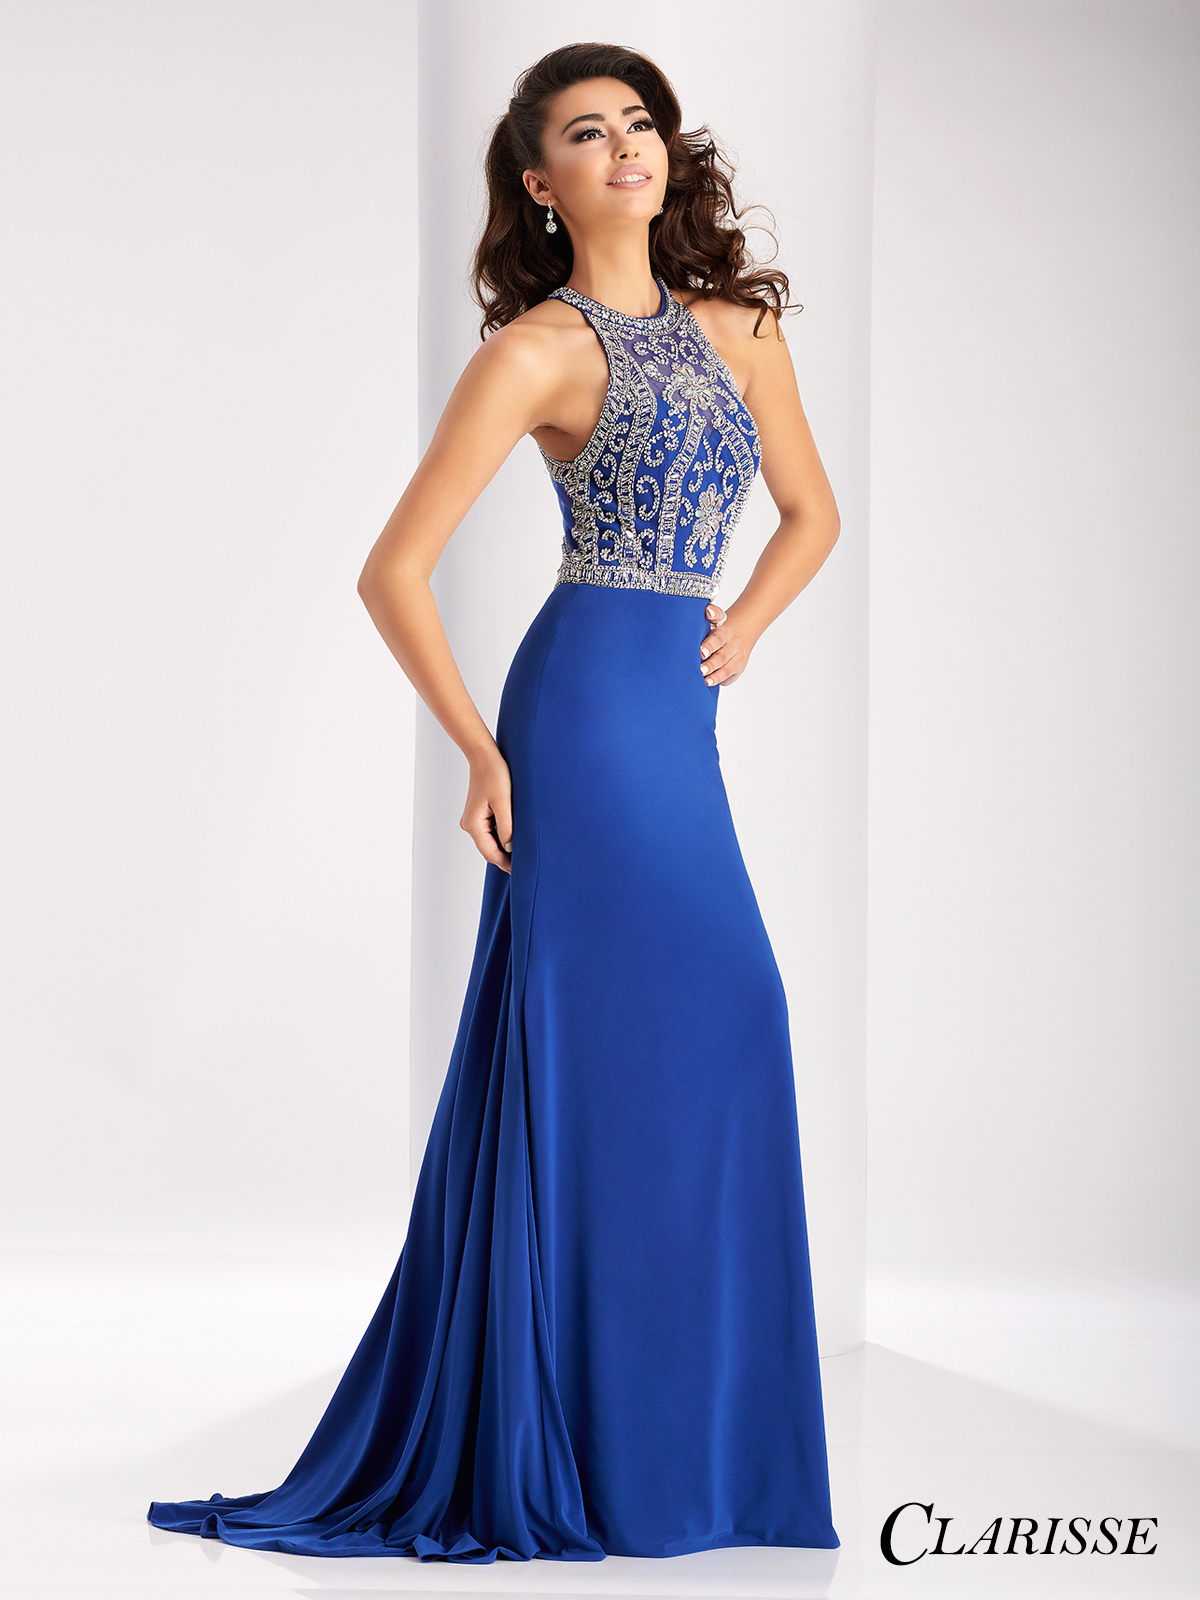 Clarisse 2807 Prom Dress | Promgirl.net